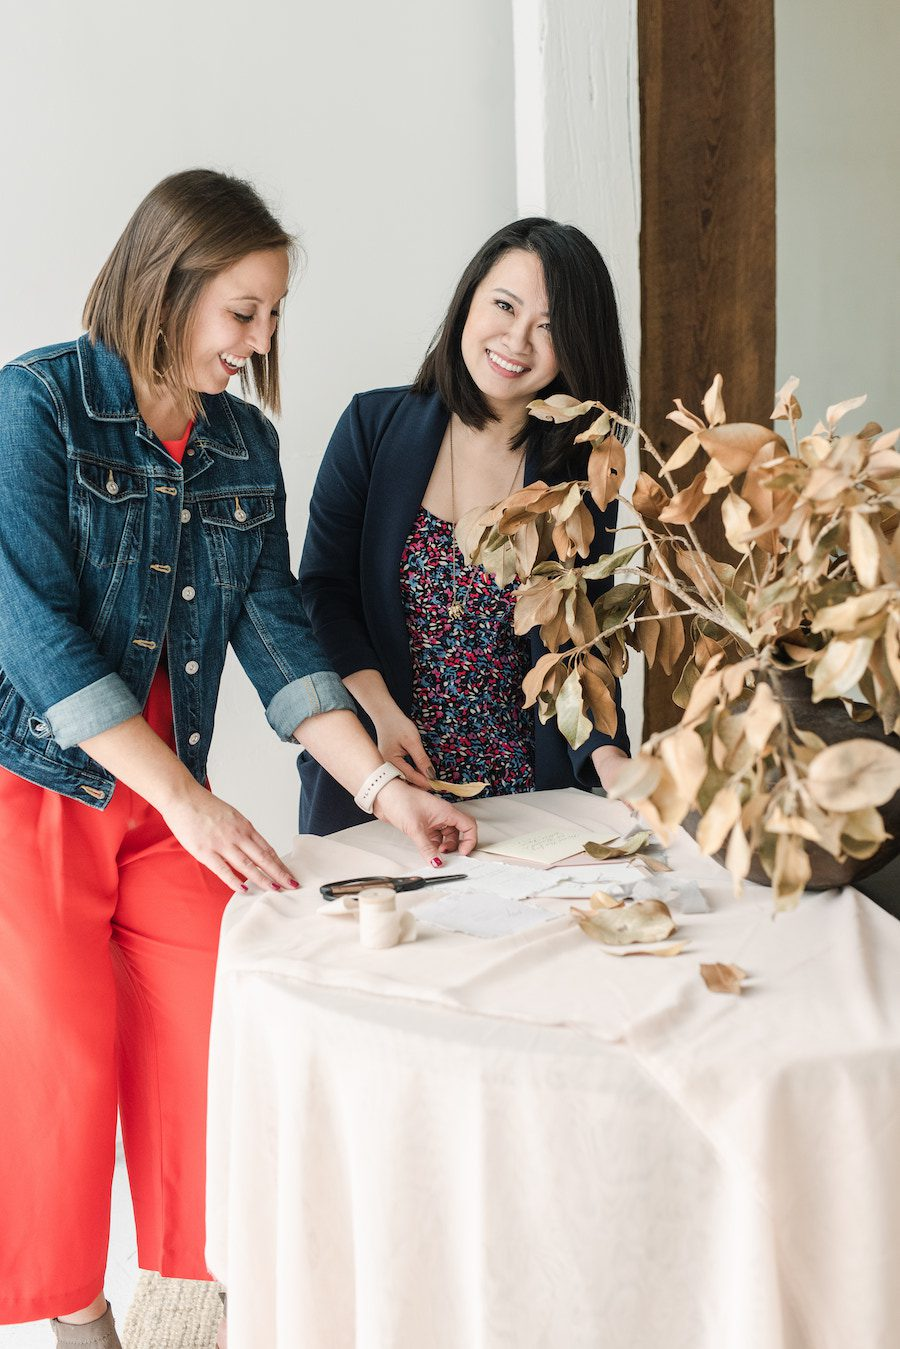 Two smiling women arranging a stationery suite hovering over a table with blush linen